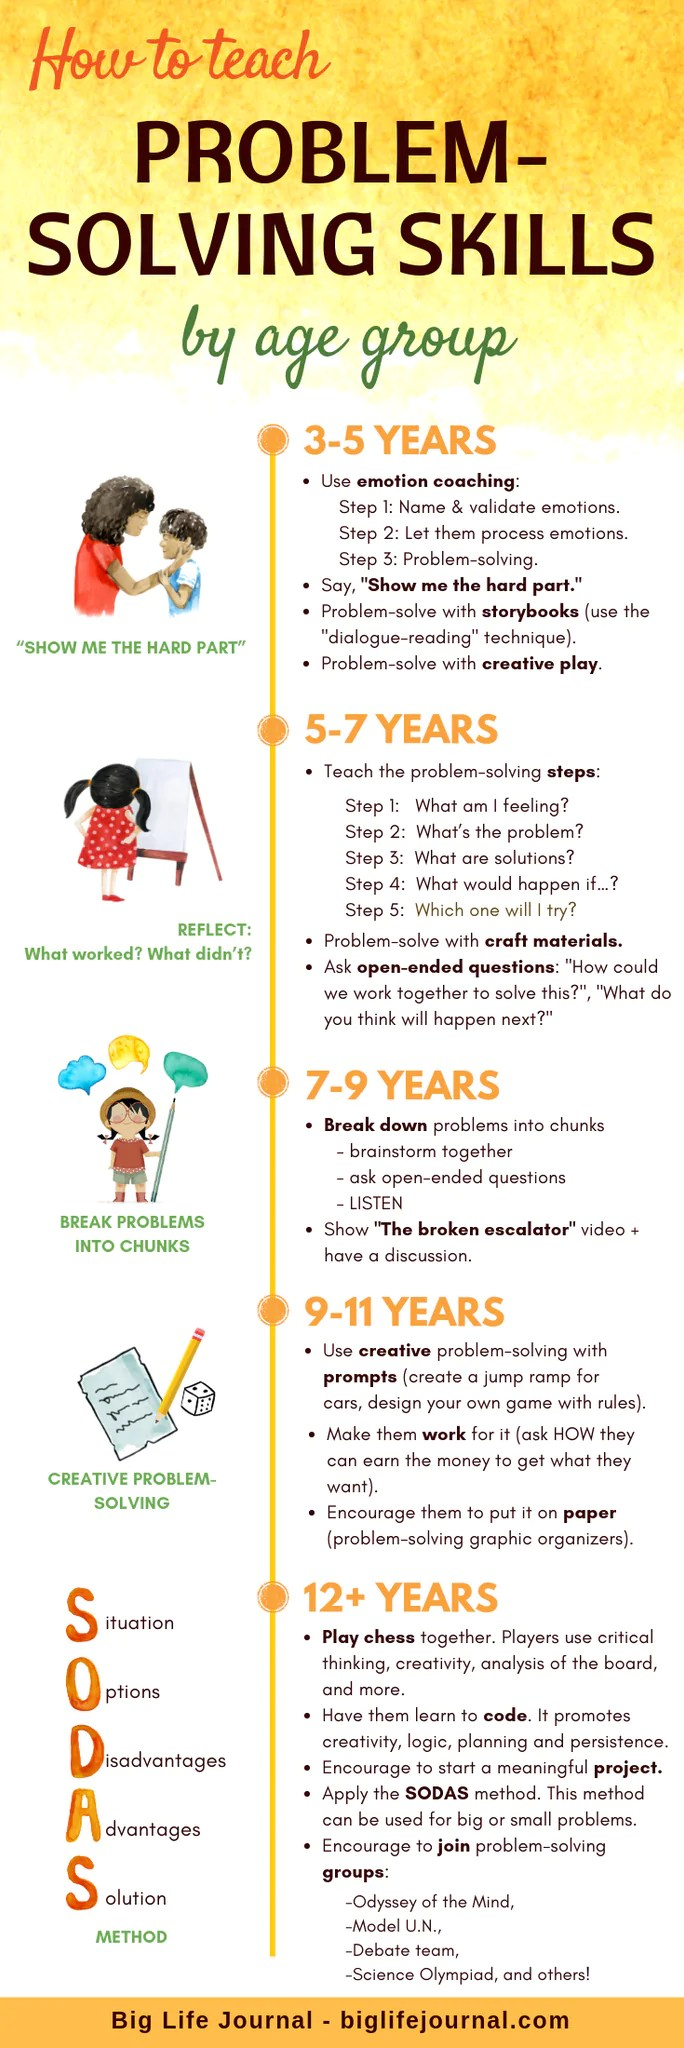 medium resolution of How to Teach Problem-Solving to Kids (ages 3-14) – Big Life Journal